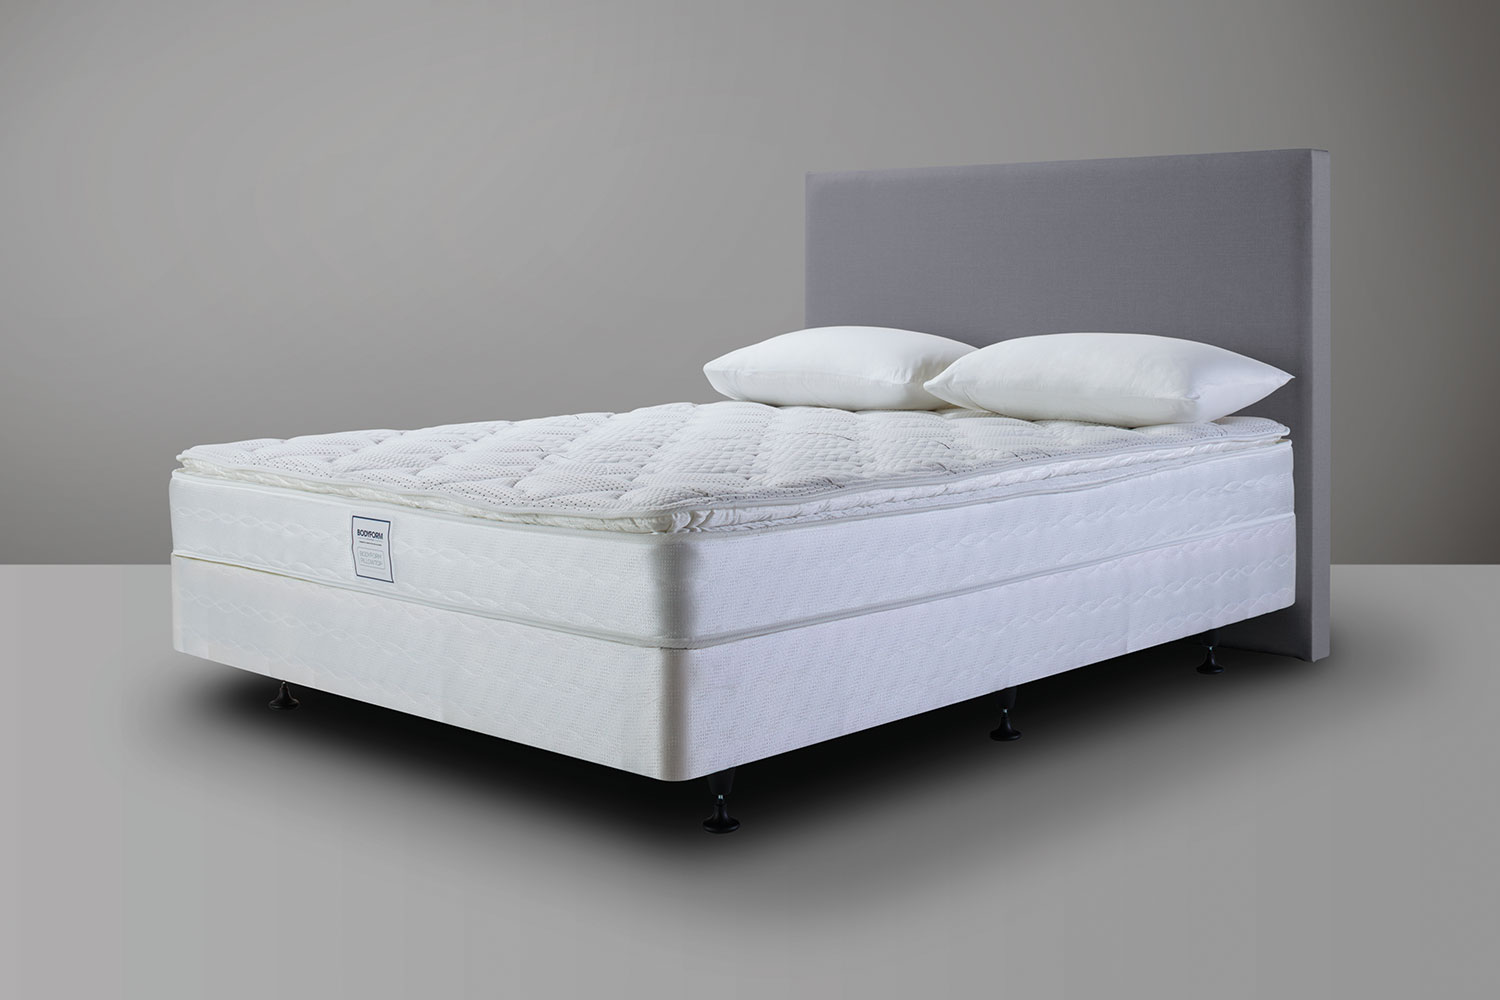 bodyform pillowtop queen bed by sealy